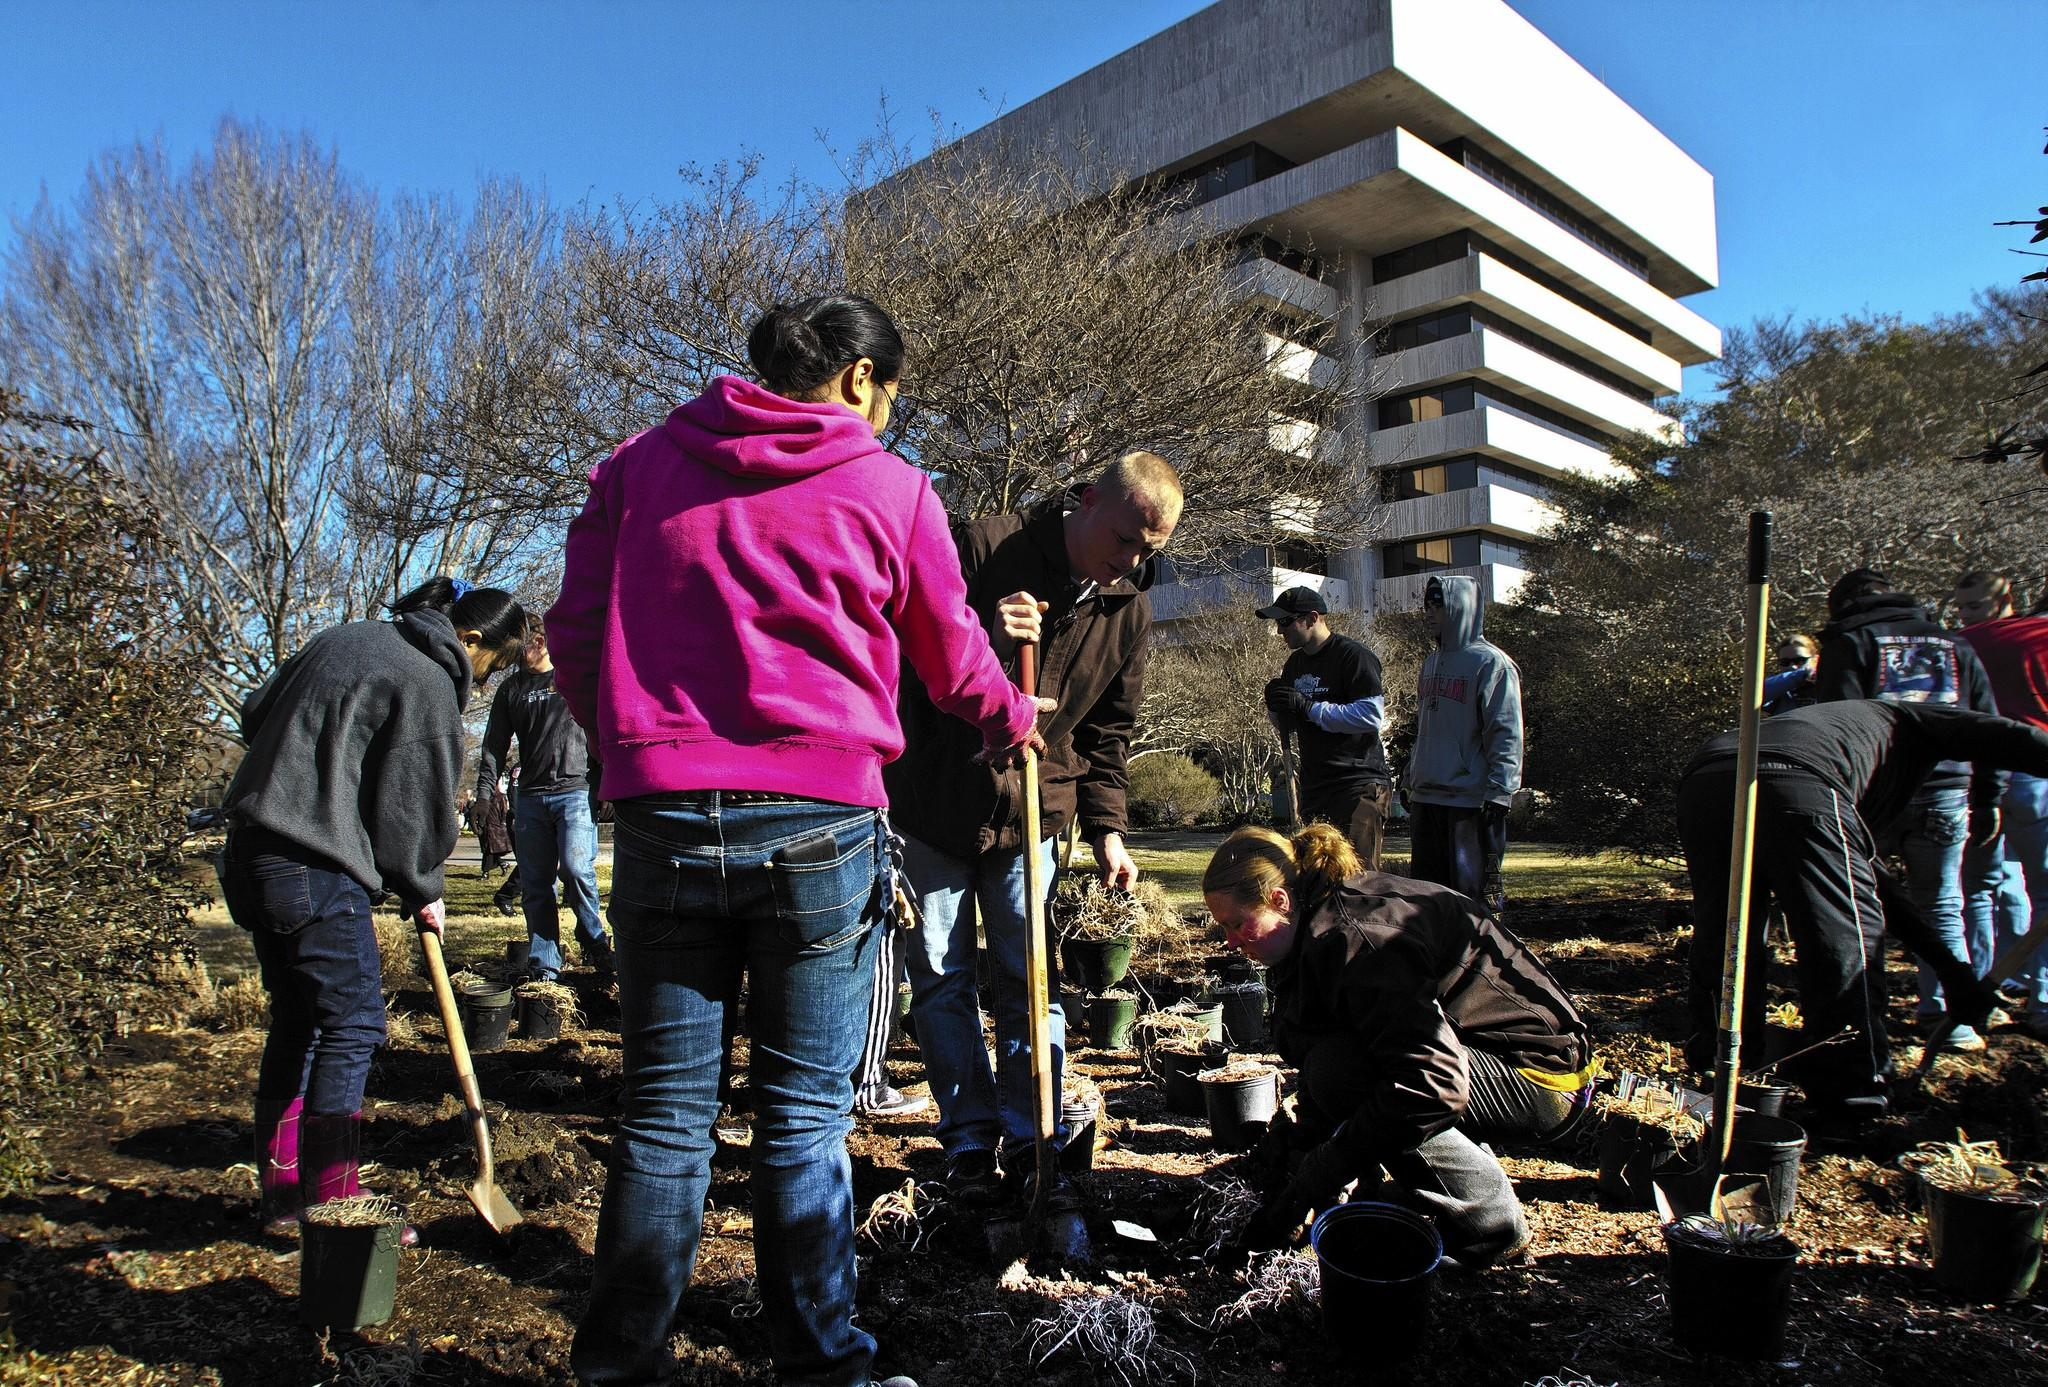 Crew members from the aircraft carrier USS Abraham Lincoln planted about 1000 plants in and around Honor Park next to Hampton City Hall as part of Friday's volunteering effort.